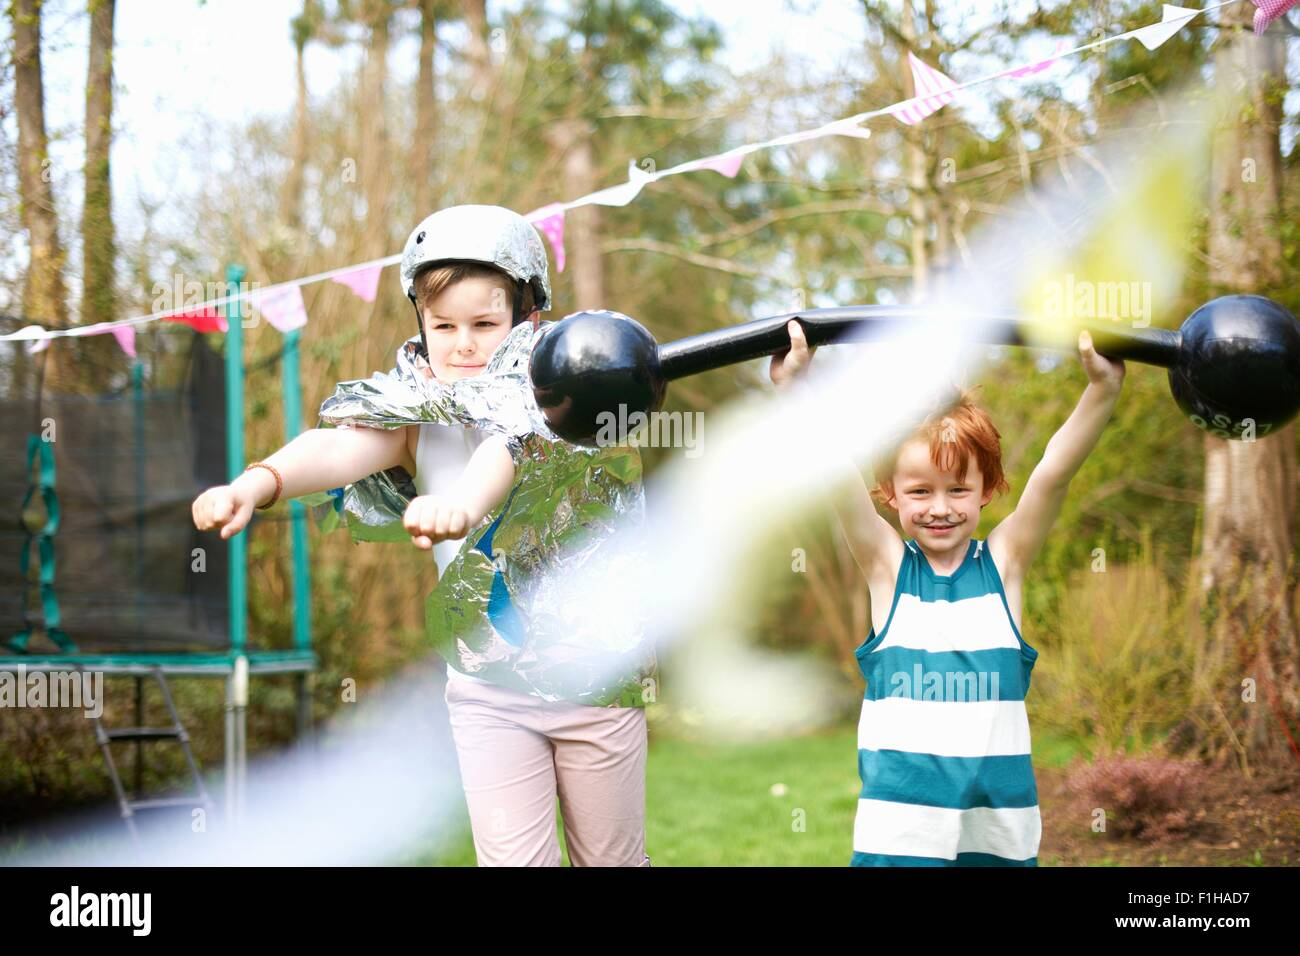 Young children wearing fancy dress, playing in garden - Stock Image